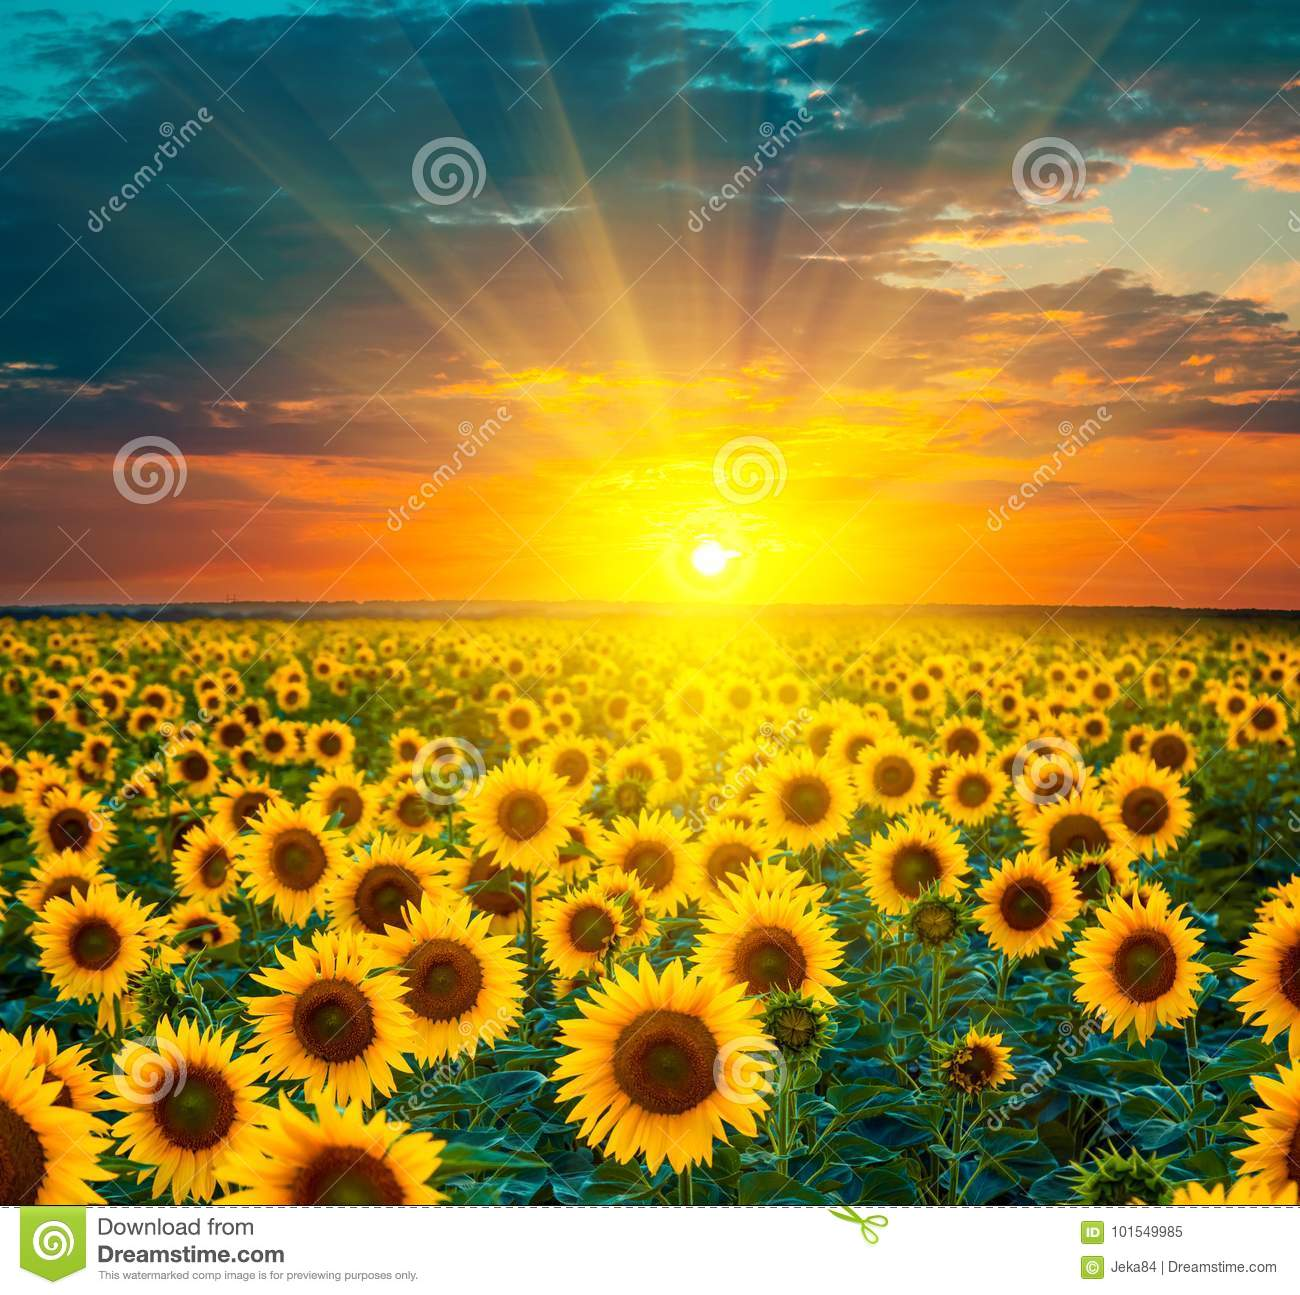 Sunflower fields during sunset. Beautiful composite of a sunrise